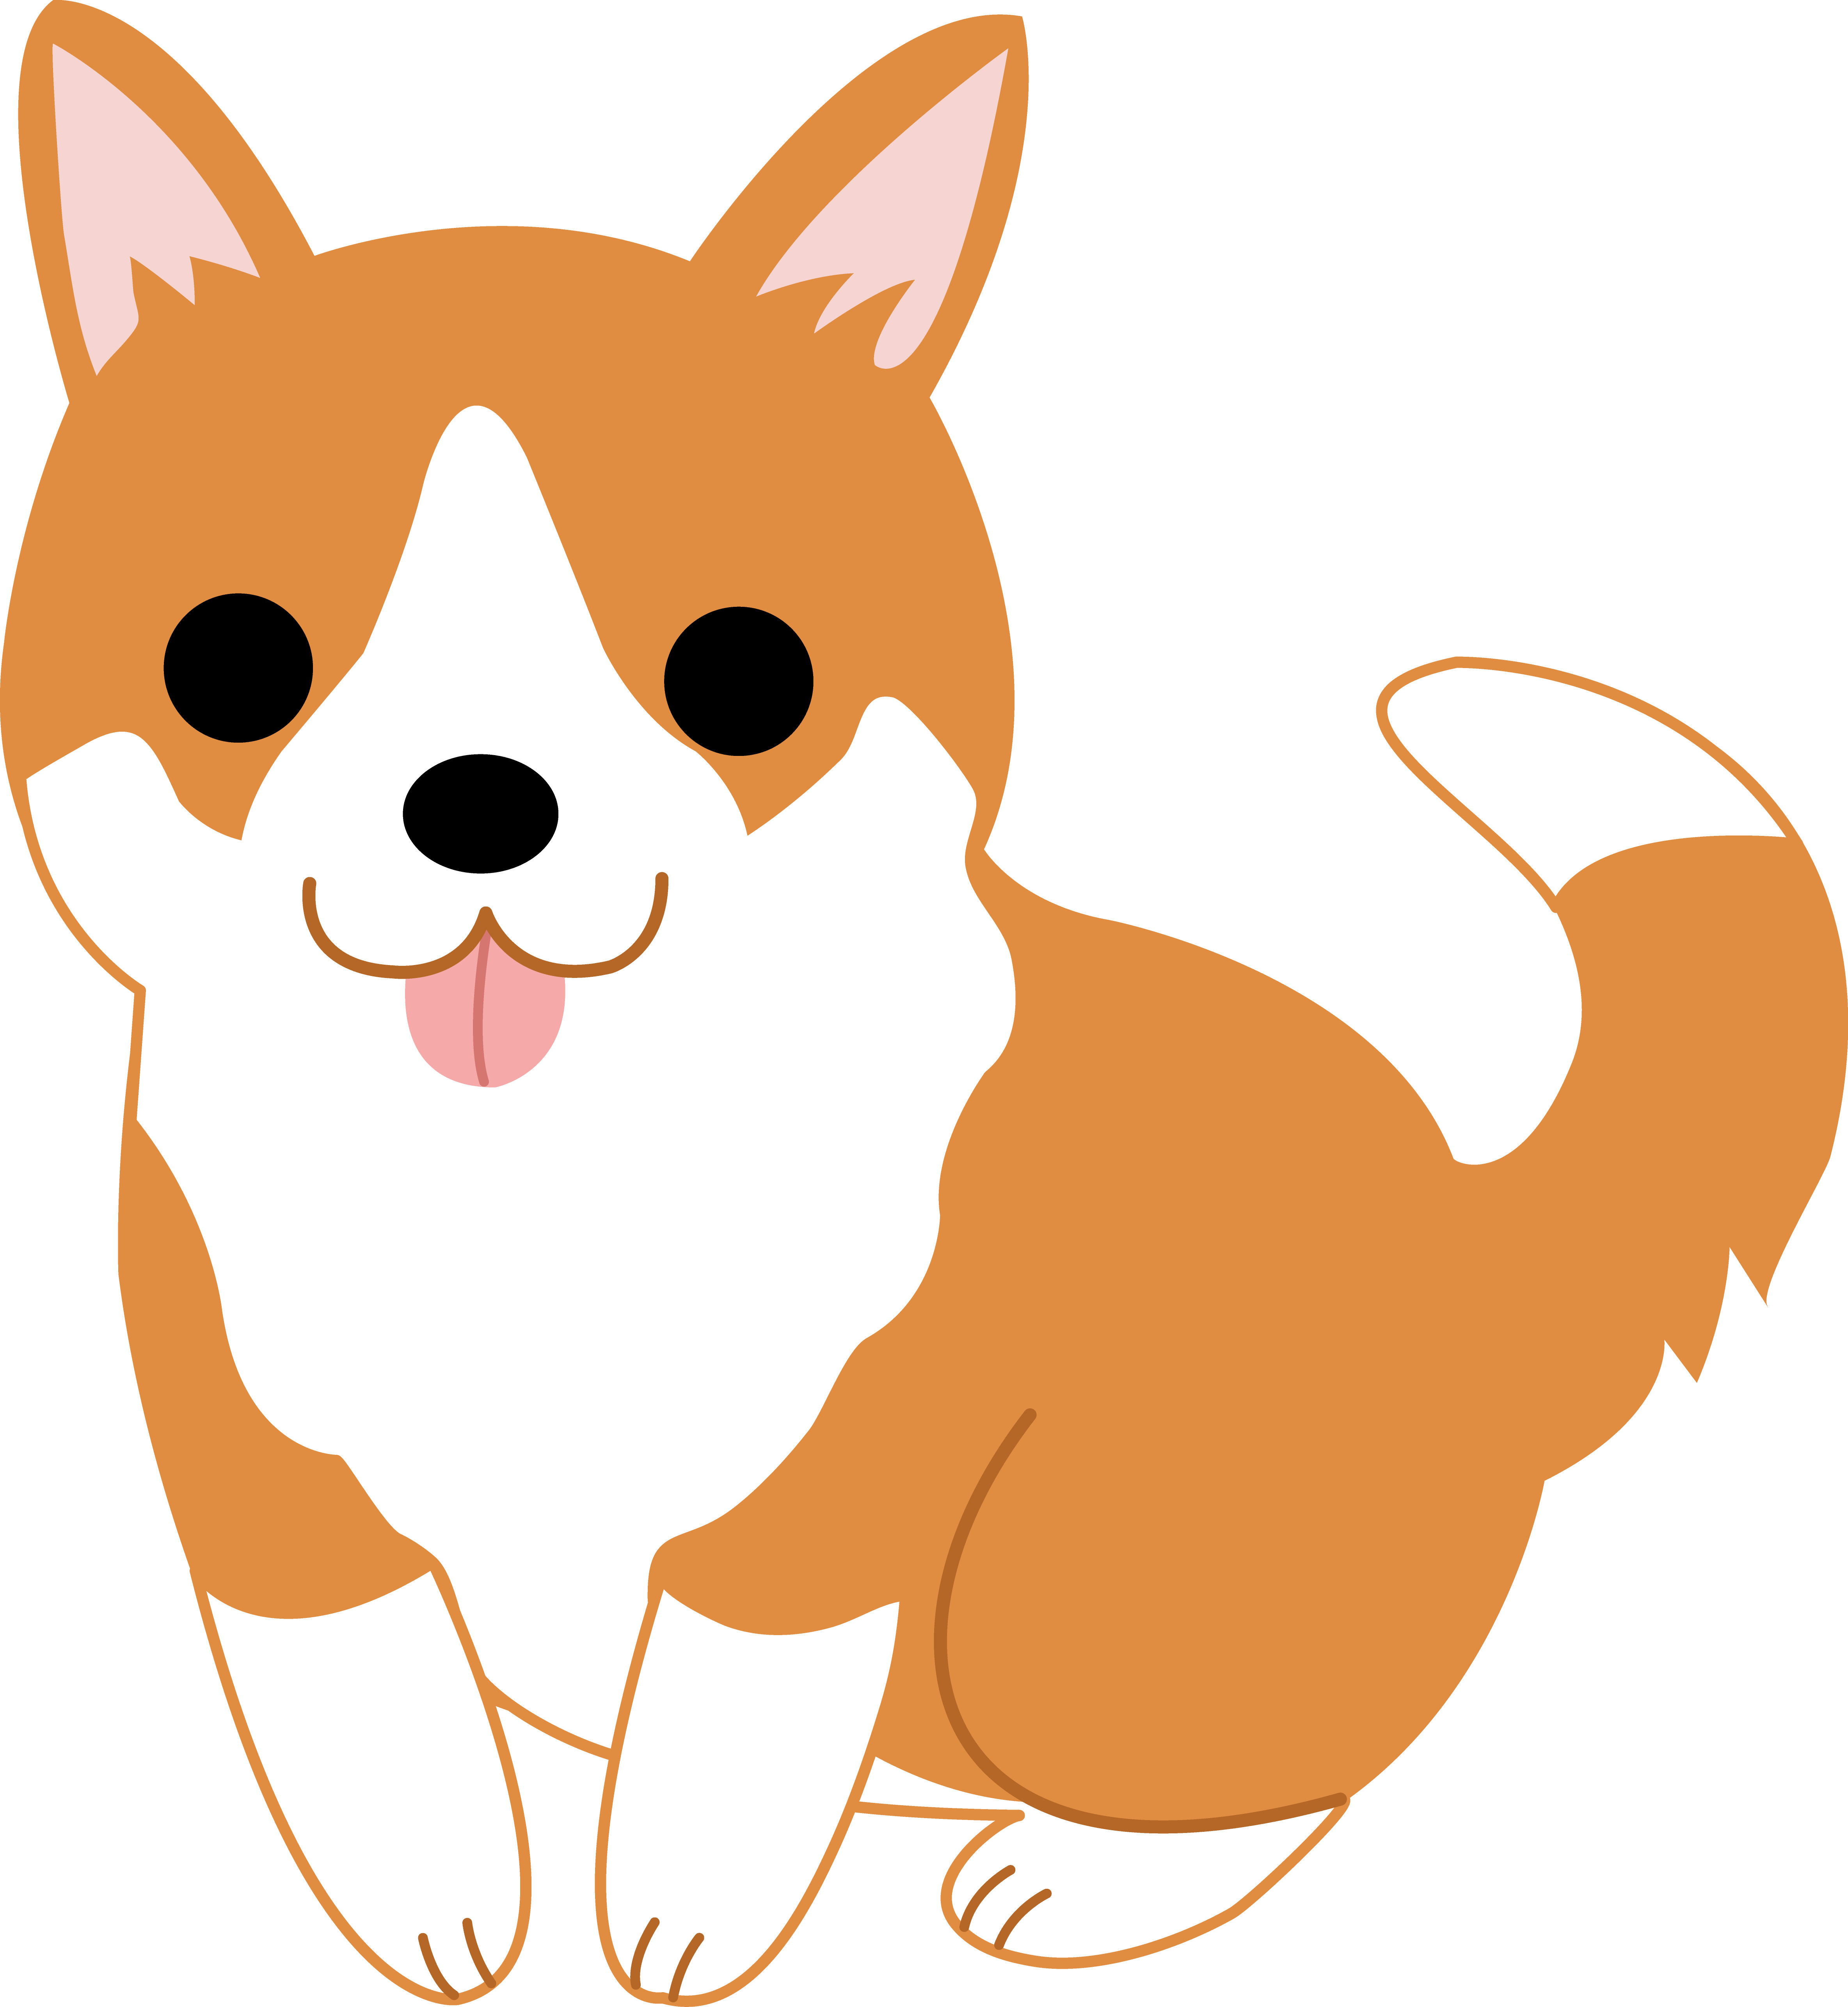 Dog clip art cute. Puppy clipart free image